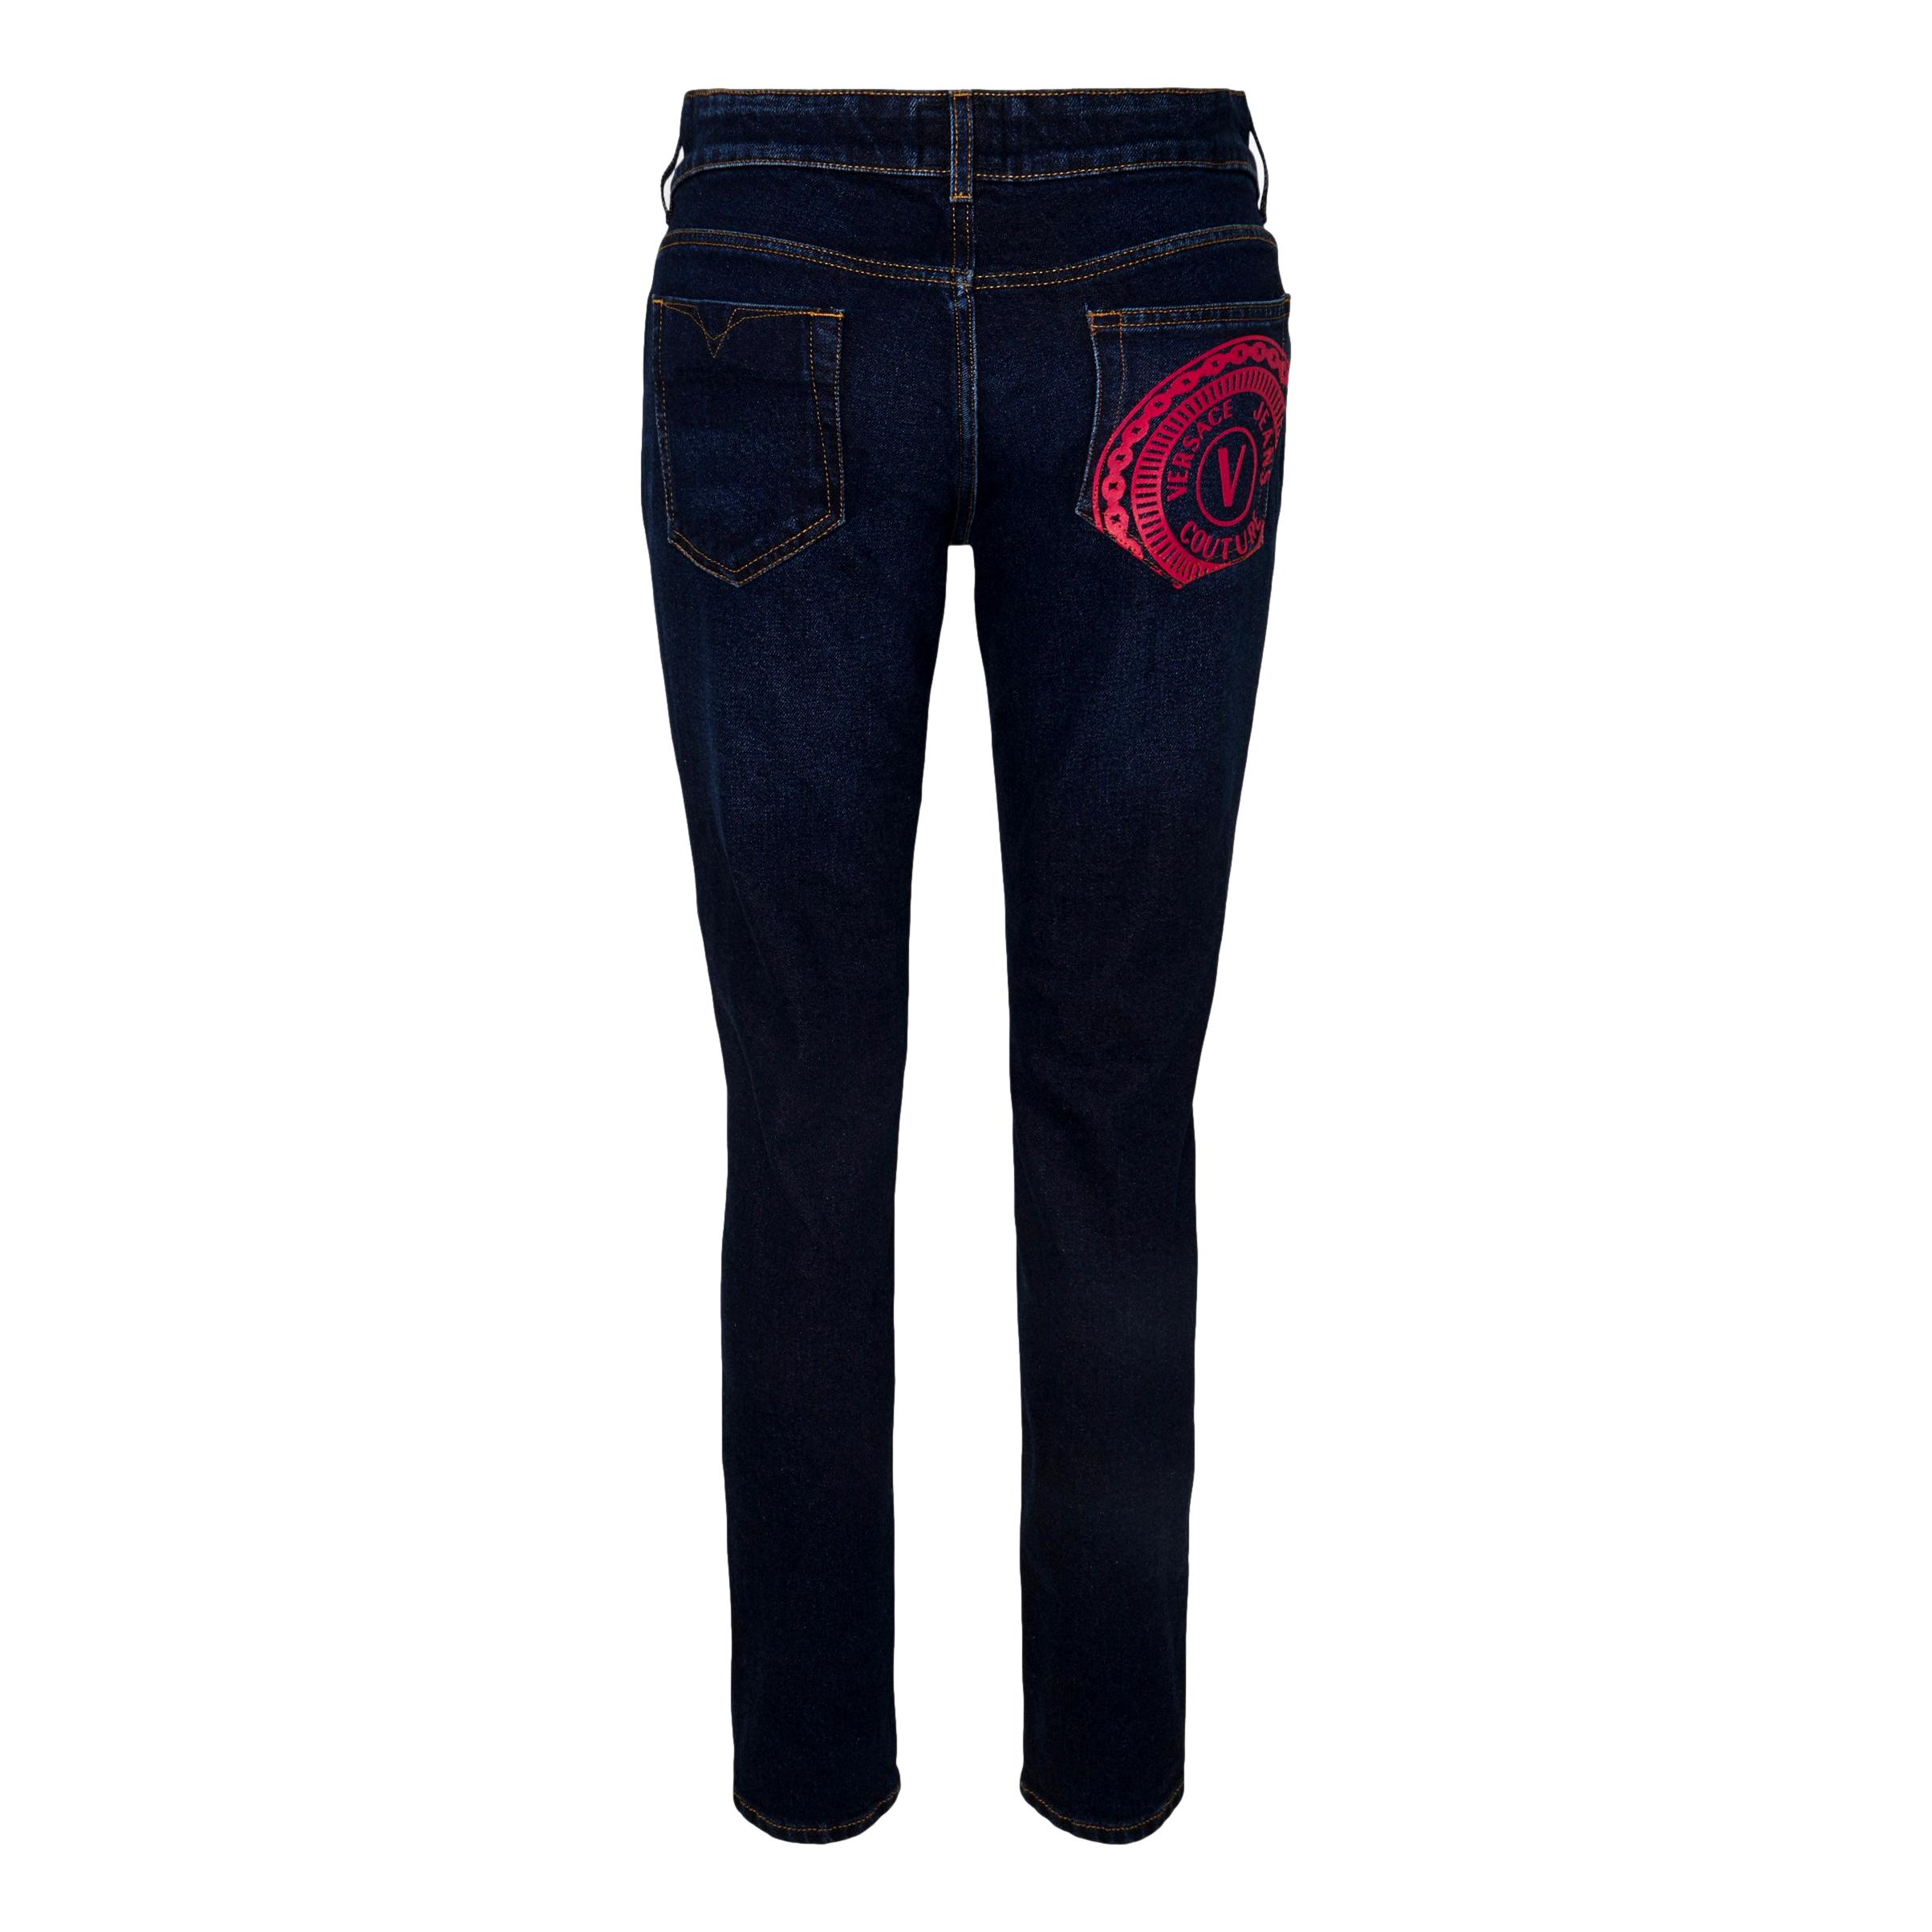 Jeans Skinny Fit con logo sulla tasca VERSACE JEANS COUTURE | Pantalone | 71HAB5K1 DW00904D904